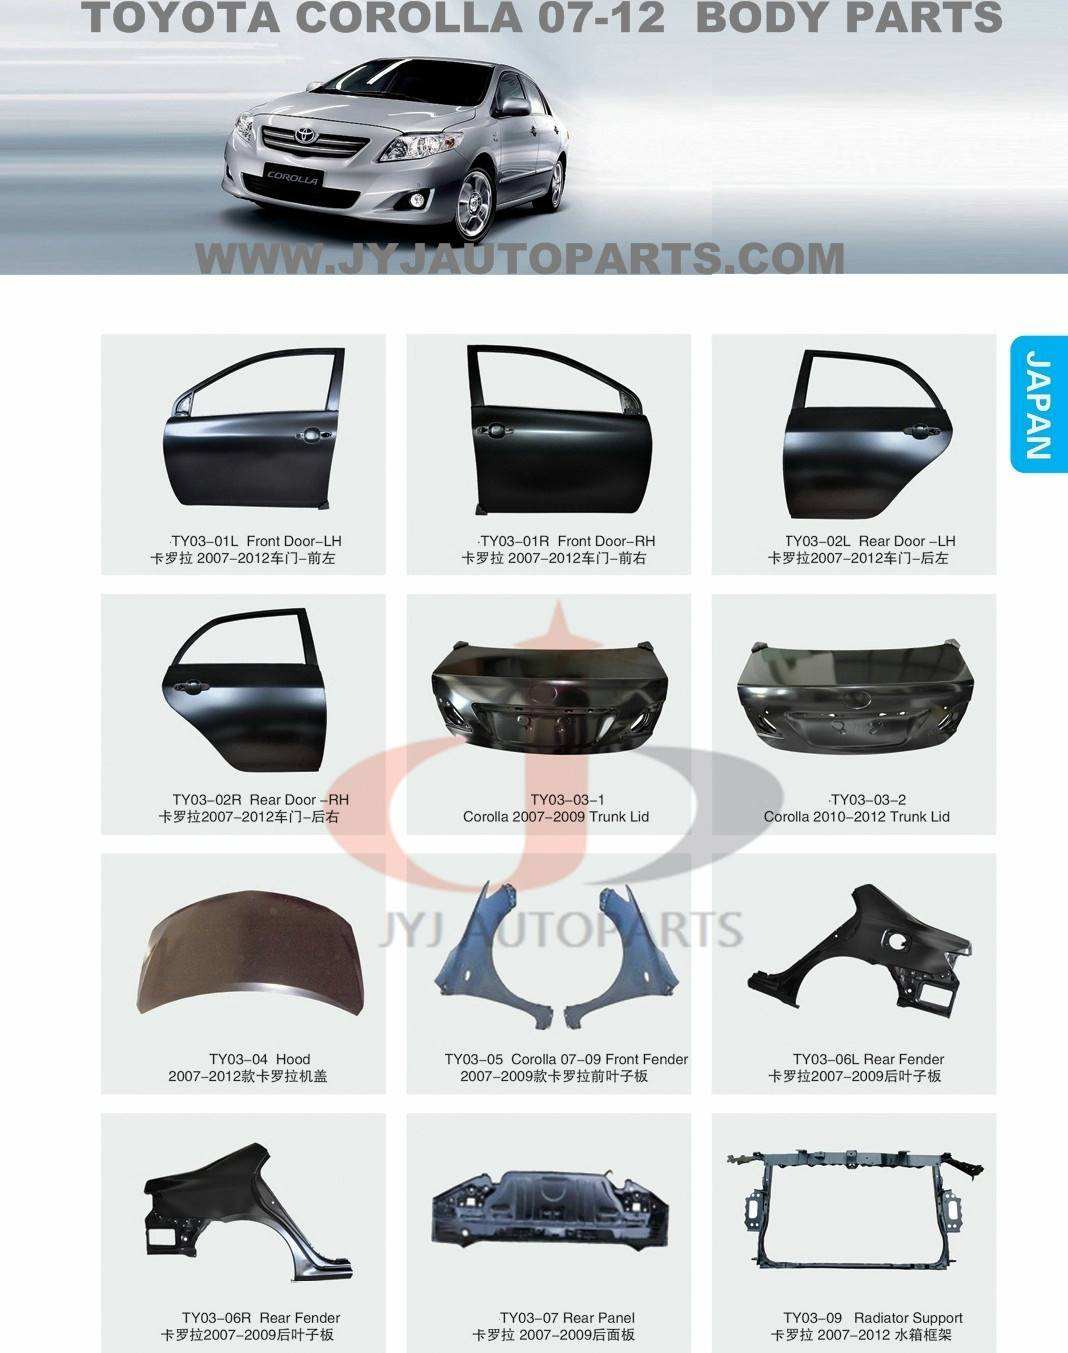 aftermarket body part for TOYOTA Corolla